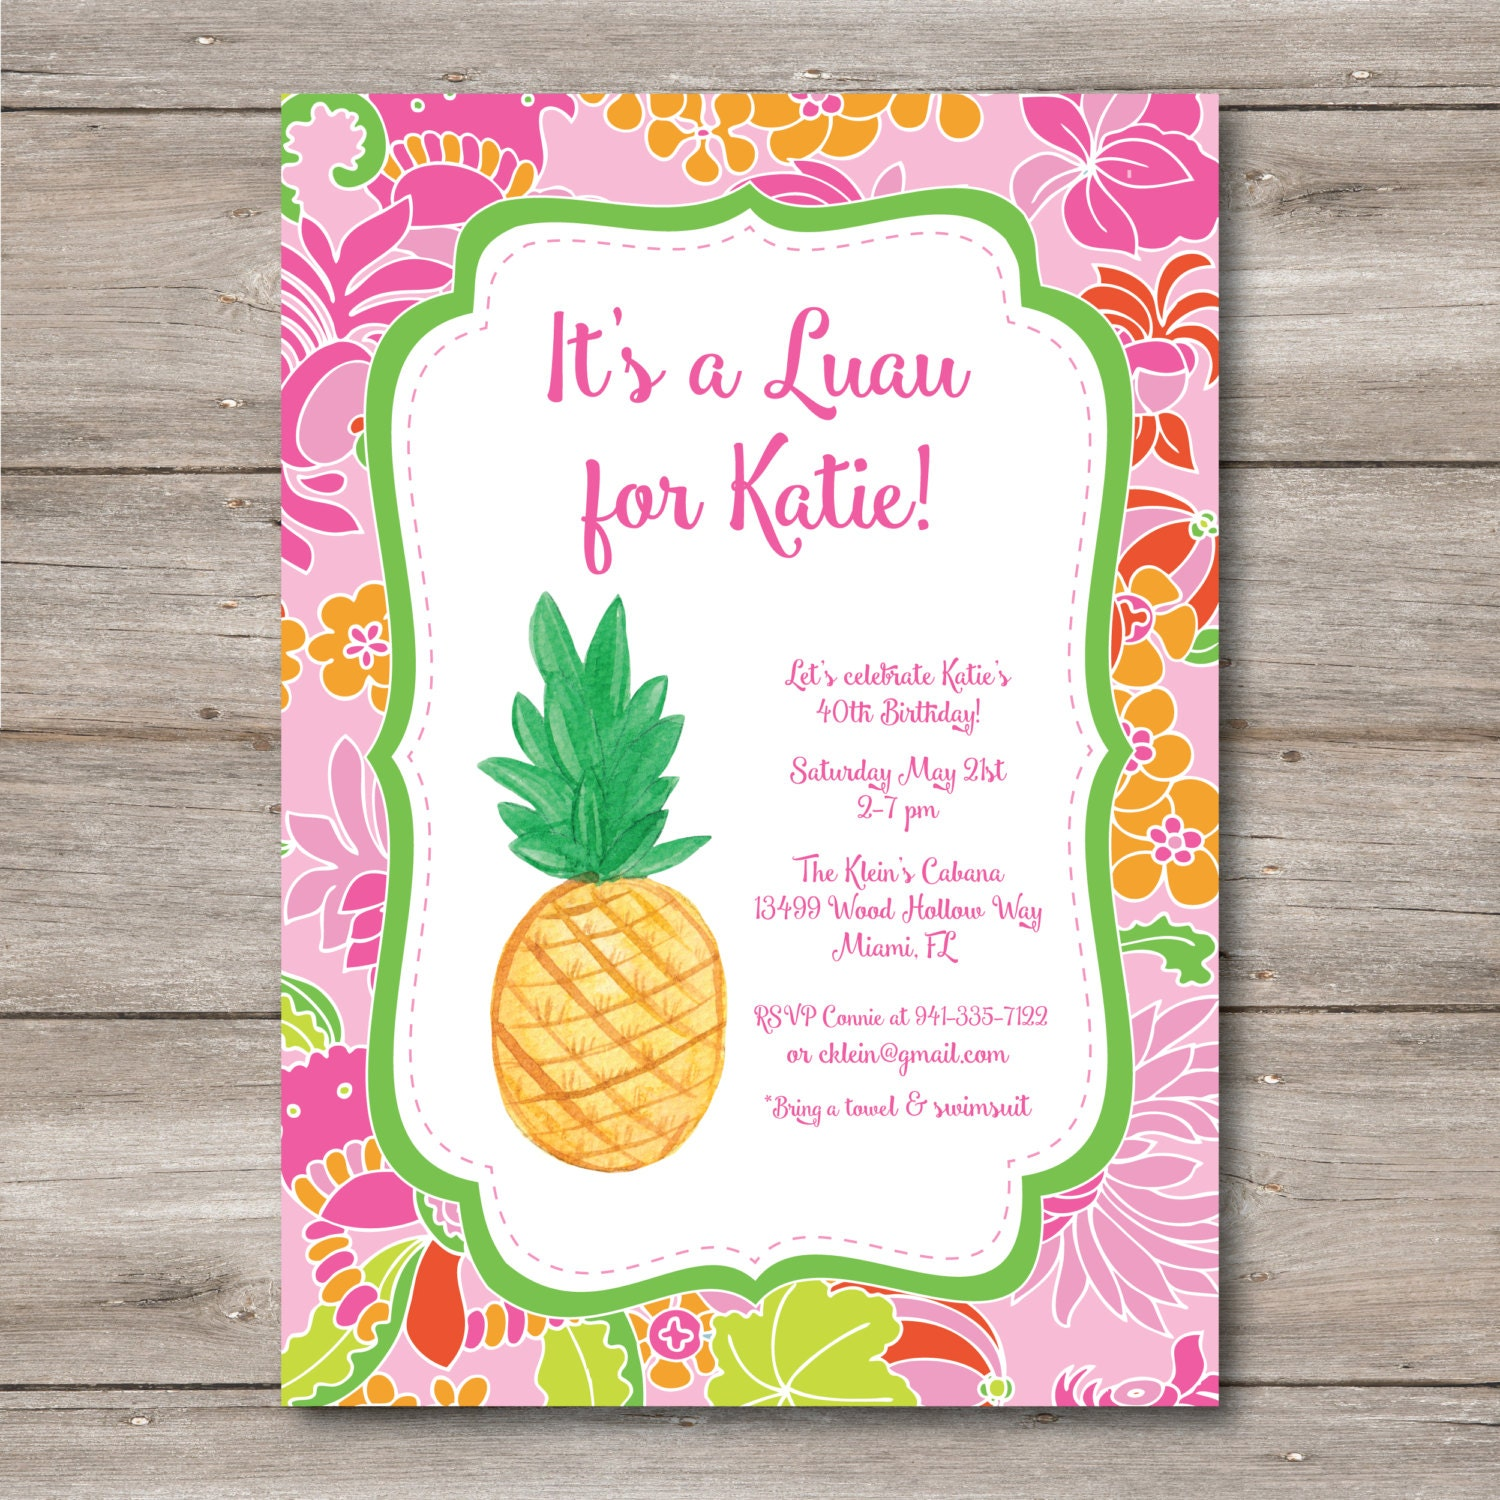 Luau invitation with editable text to print at home diy luau zoom stopboris Gallery